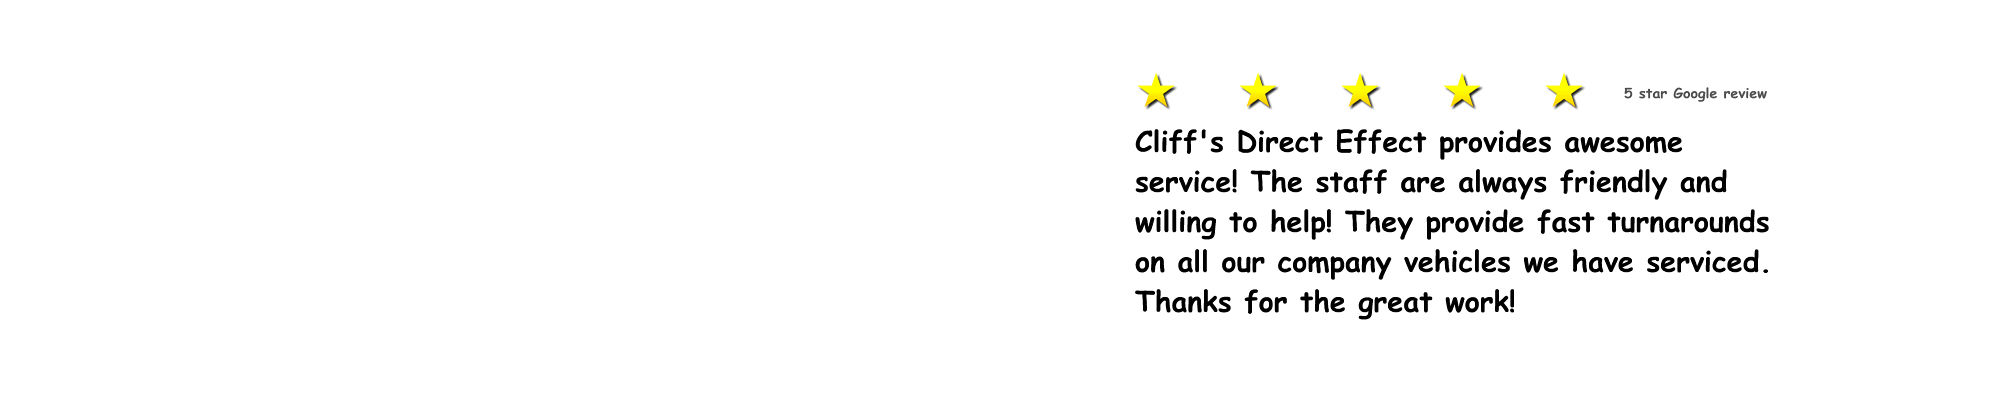 Cliff's Direct Effect - 5-star Google review